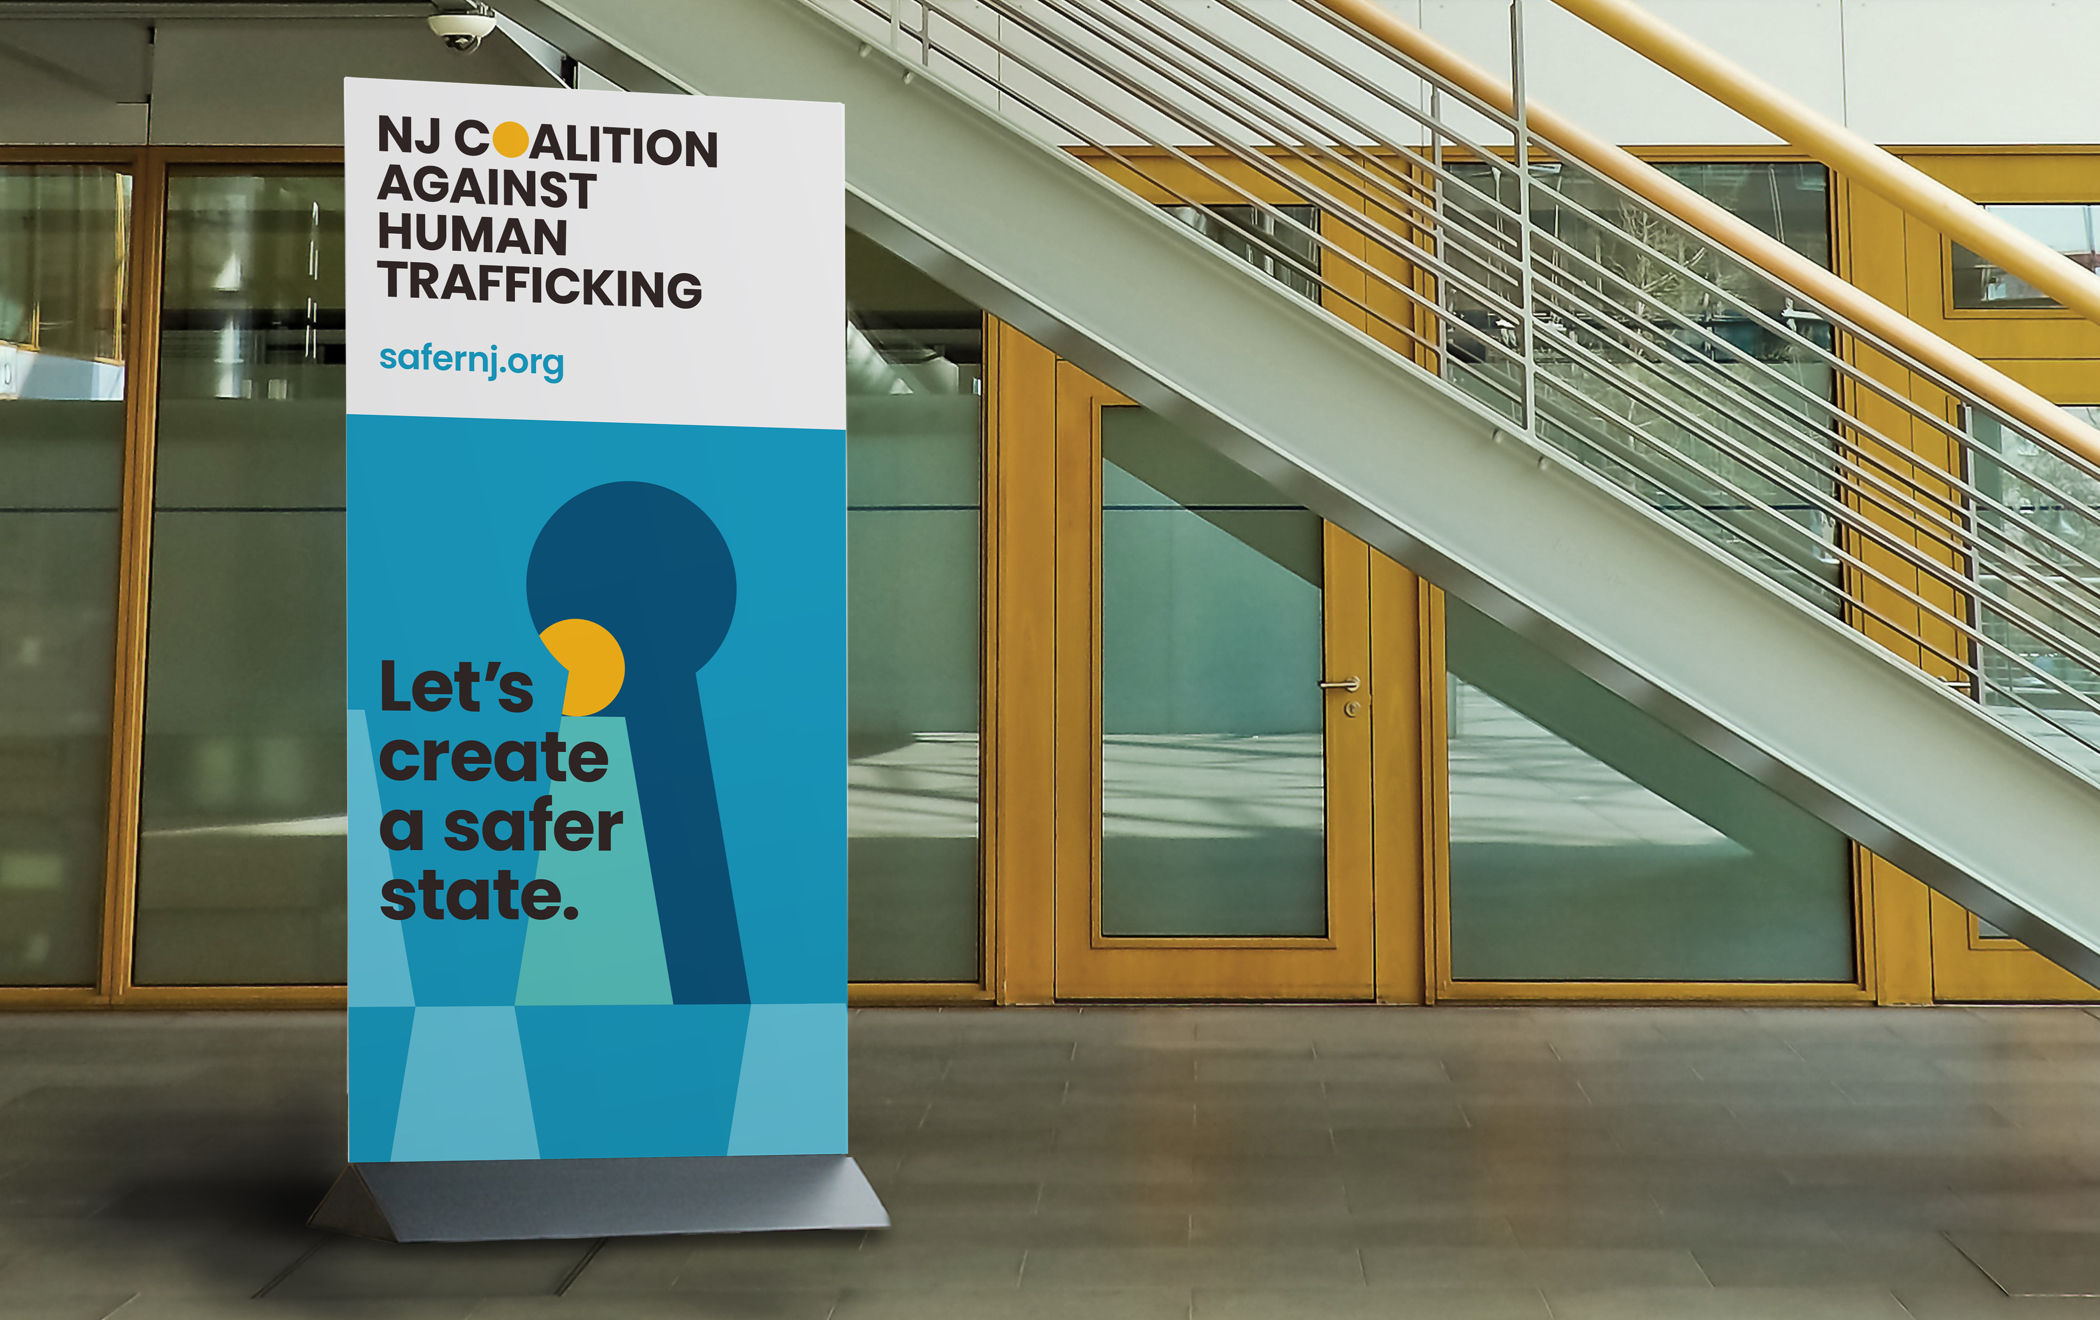 """Pull-up banner with NJ Coalition Against Human Trafficking branding reads """"Let's create a safer state. safernj.org"""""""